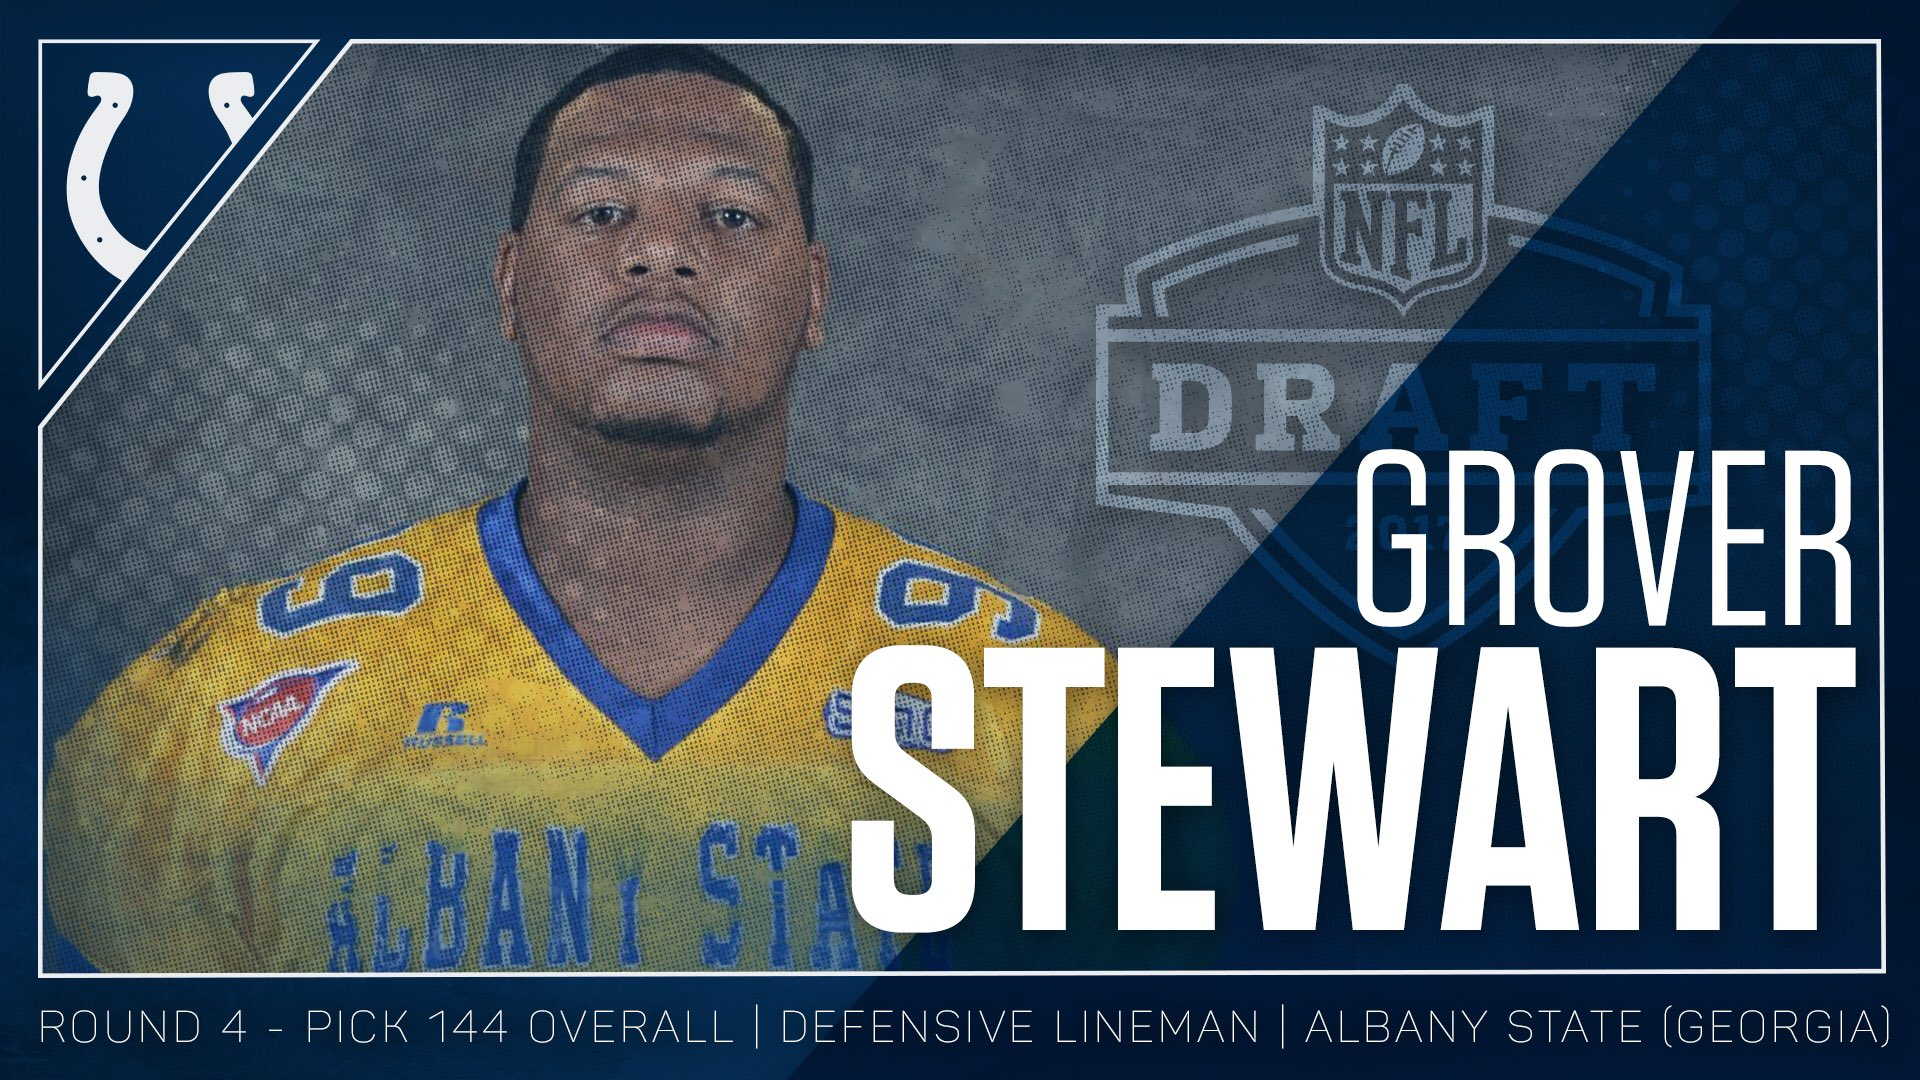 RT and help us welcome DT Grover Stewart to the horseshoe! #ColtsDraft https://t.co/8BJuPmVjOK